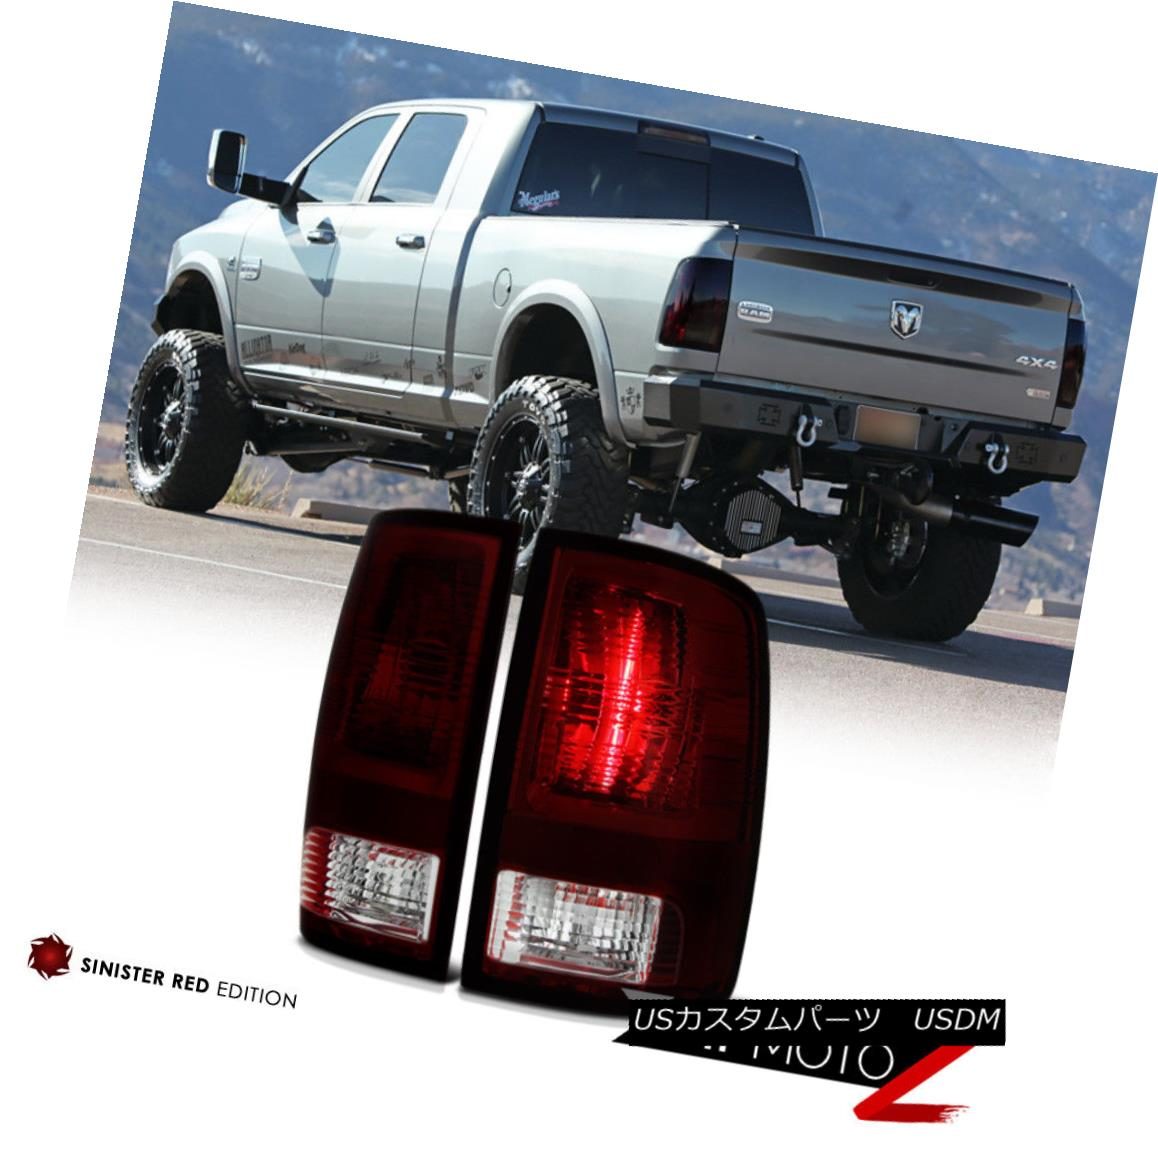 テールライト [SINISTER RED] DARK Red Smoke Tail Lights Brake Lamps 2009-2018 Dodge Ram Pickup [SINISTER RED]赤い煙テールライトブレーキランプ2009-2018 Dodge Ram Pickup